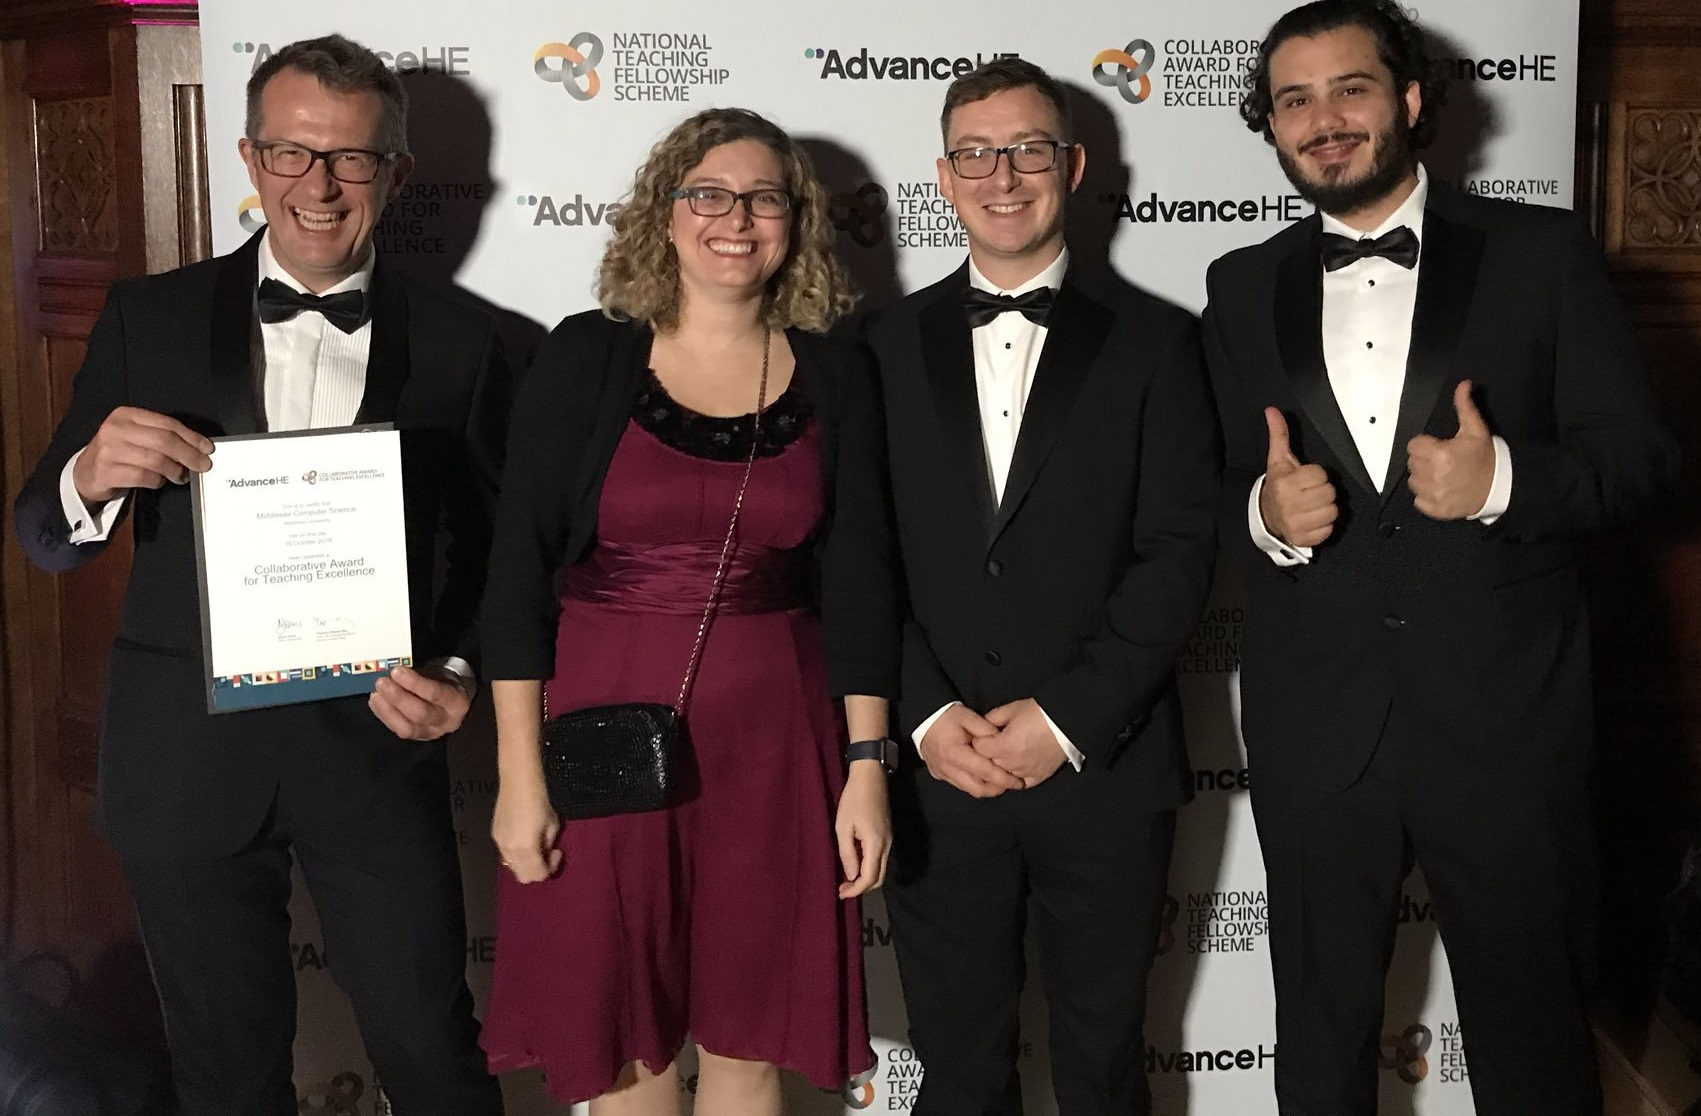 MDX Computer Science team wins Collaborative Award for Teaching Excellence